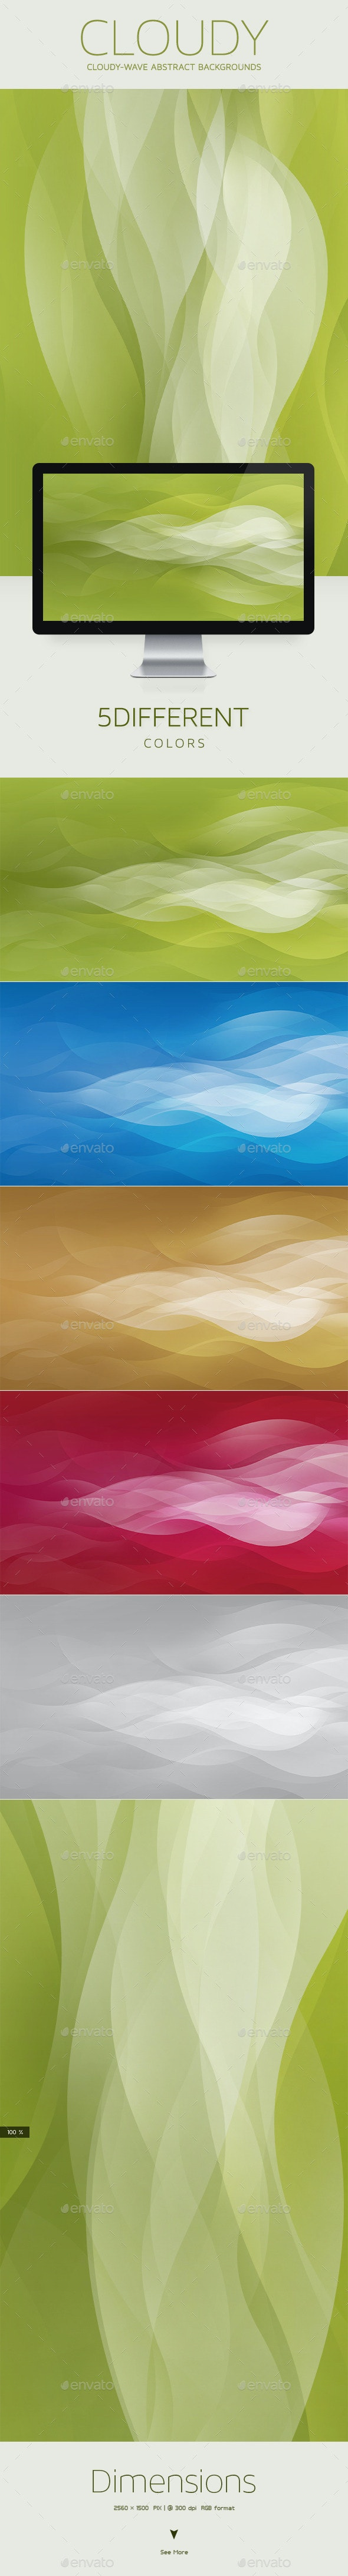 Cloudy-Wave Background Horizontal and Vertical - Abstract Backgrounds